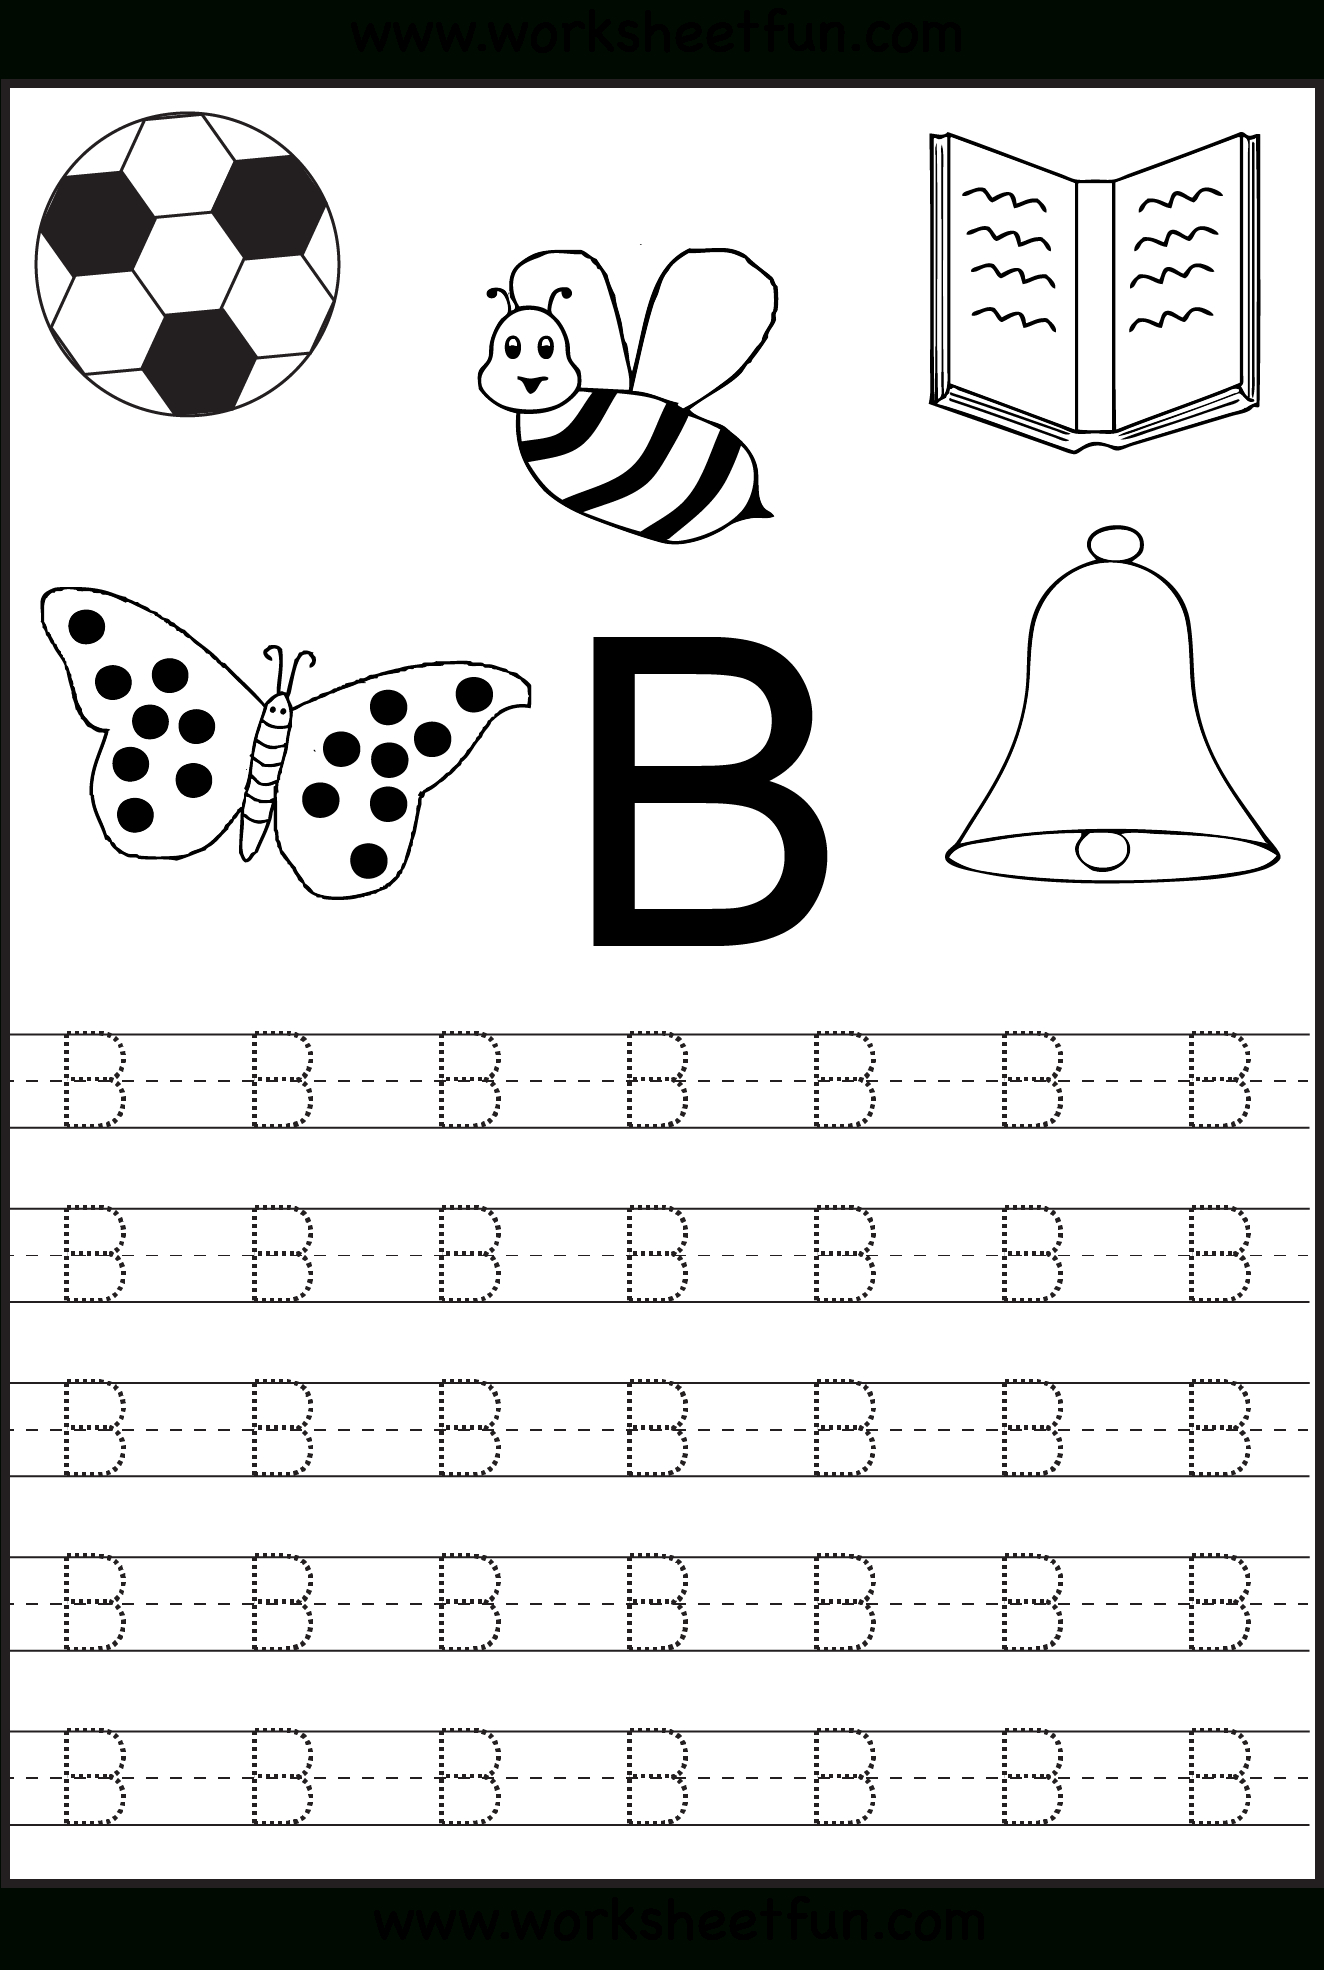 Free Printable Letter Tracing Worksheets For Kindergarten pertaining to Alphabet Worksheets Kindergarten Printable